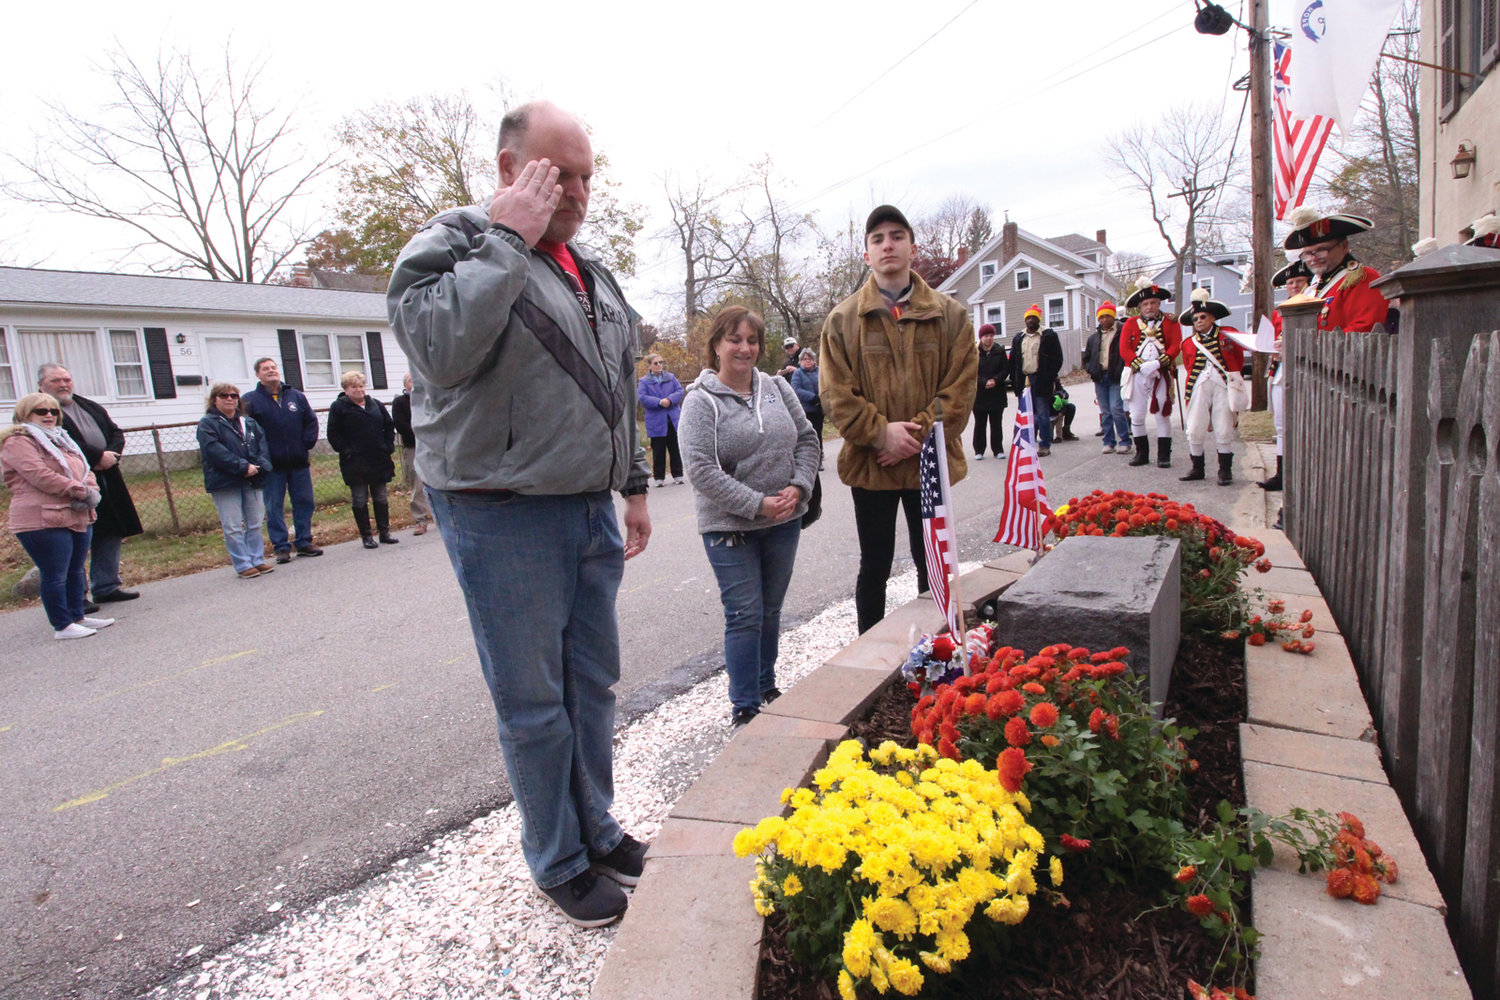 AT DEDICATION: James Loffler, his wife and his son Nicholas stand at the memorial garden at the Pawtuxet Rangers Armory. Nicholas built the garden as his Eagle Scout project.